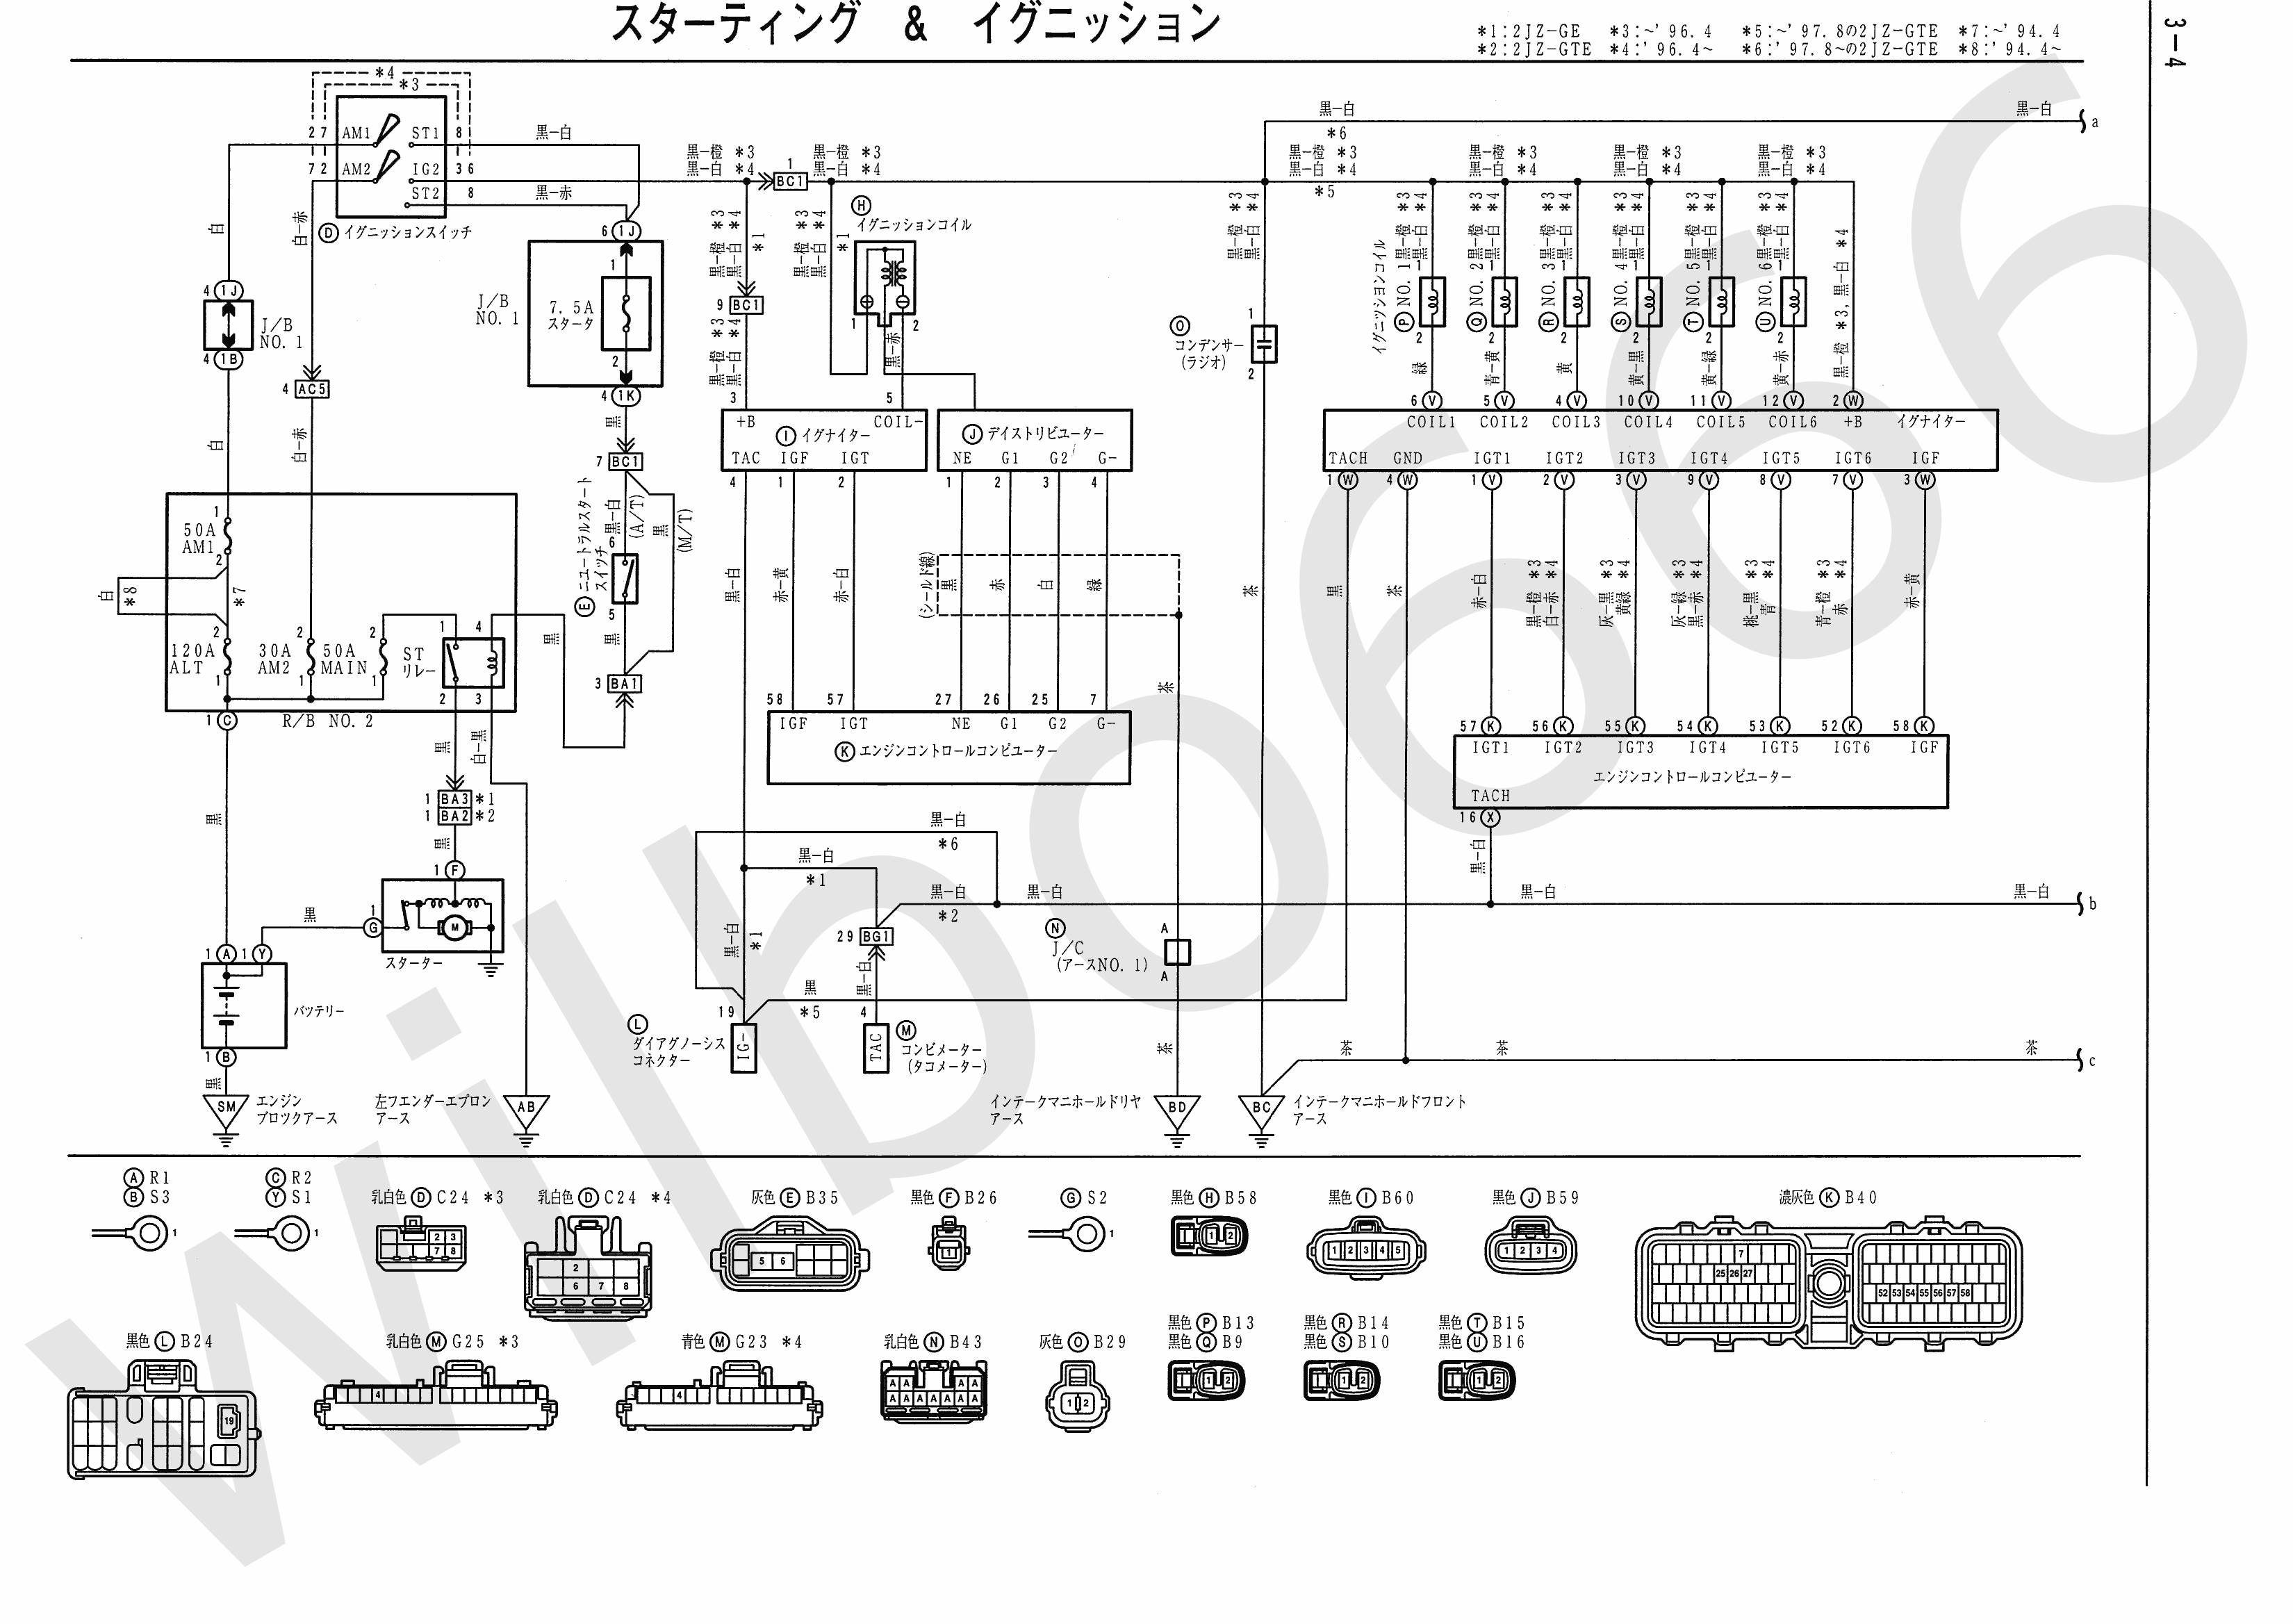 JZA80 Electrical Wiring Diagram 6742505 3 4?resize\\\\\\\\\\\\\\\\\\\\\\\\\\\=665%2C471 satchwell room thermostats thermostat pinout on satchwell satchwell thermostat wiring diagram at soozxer.org